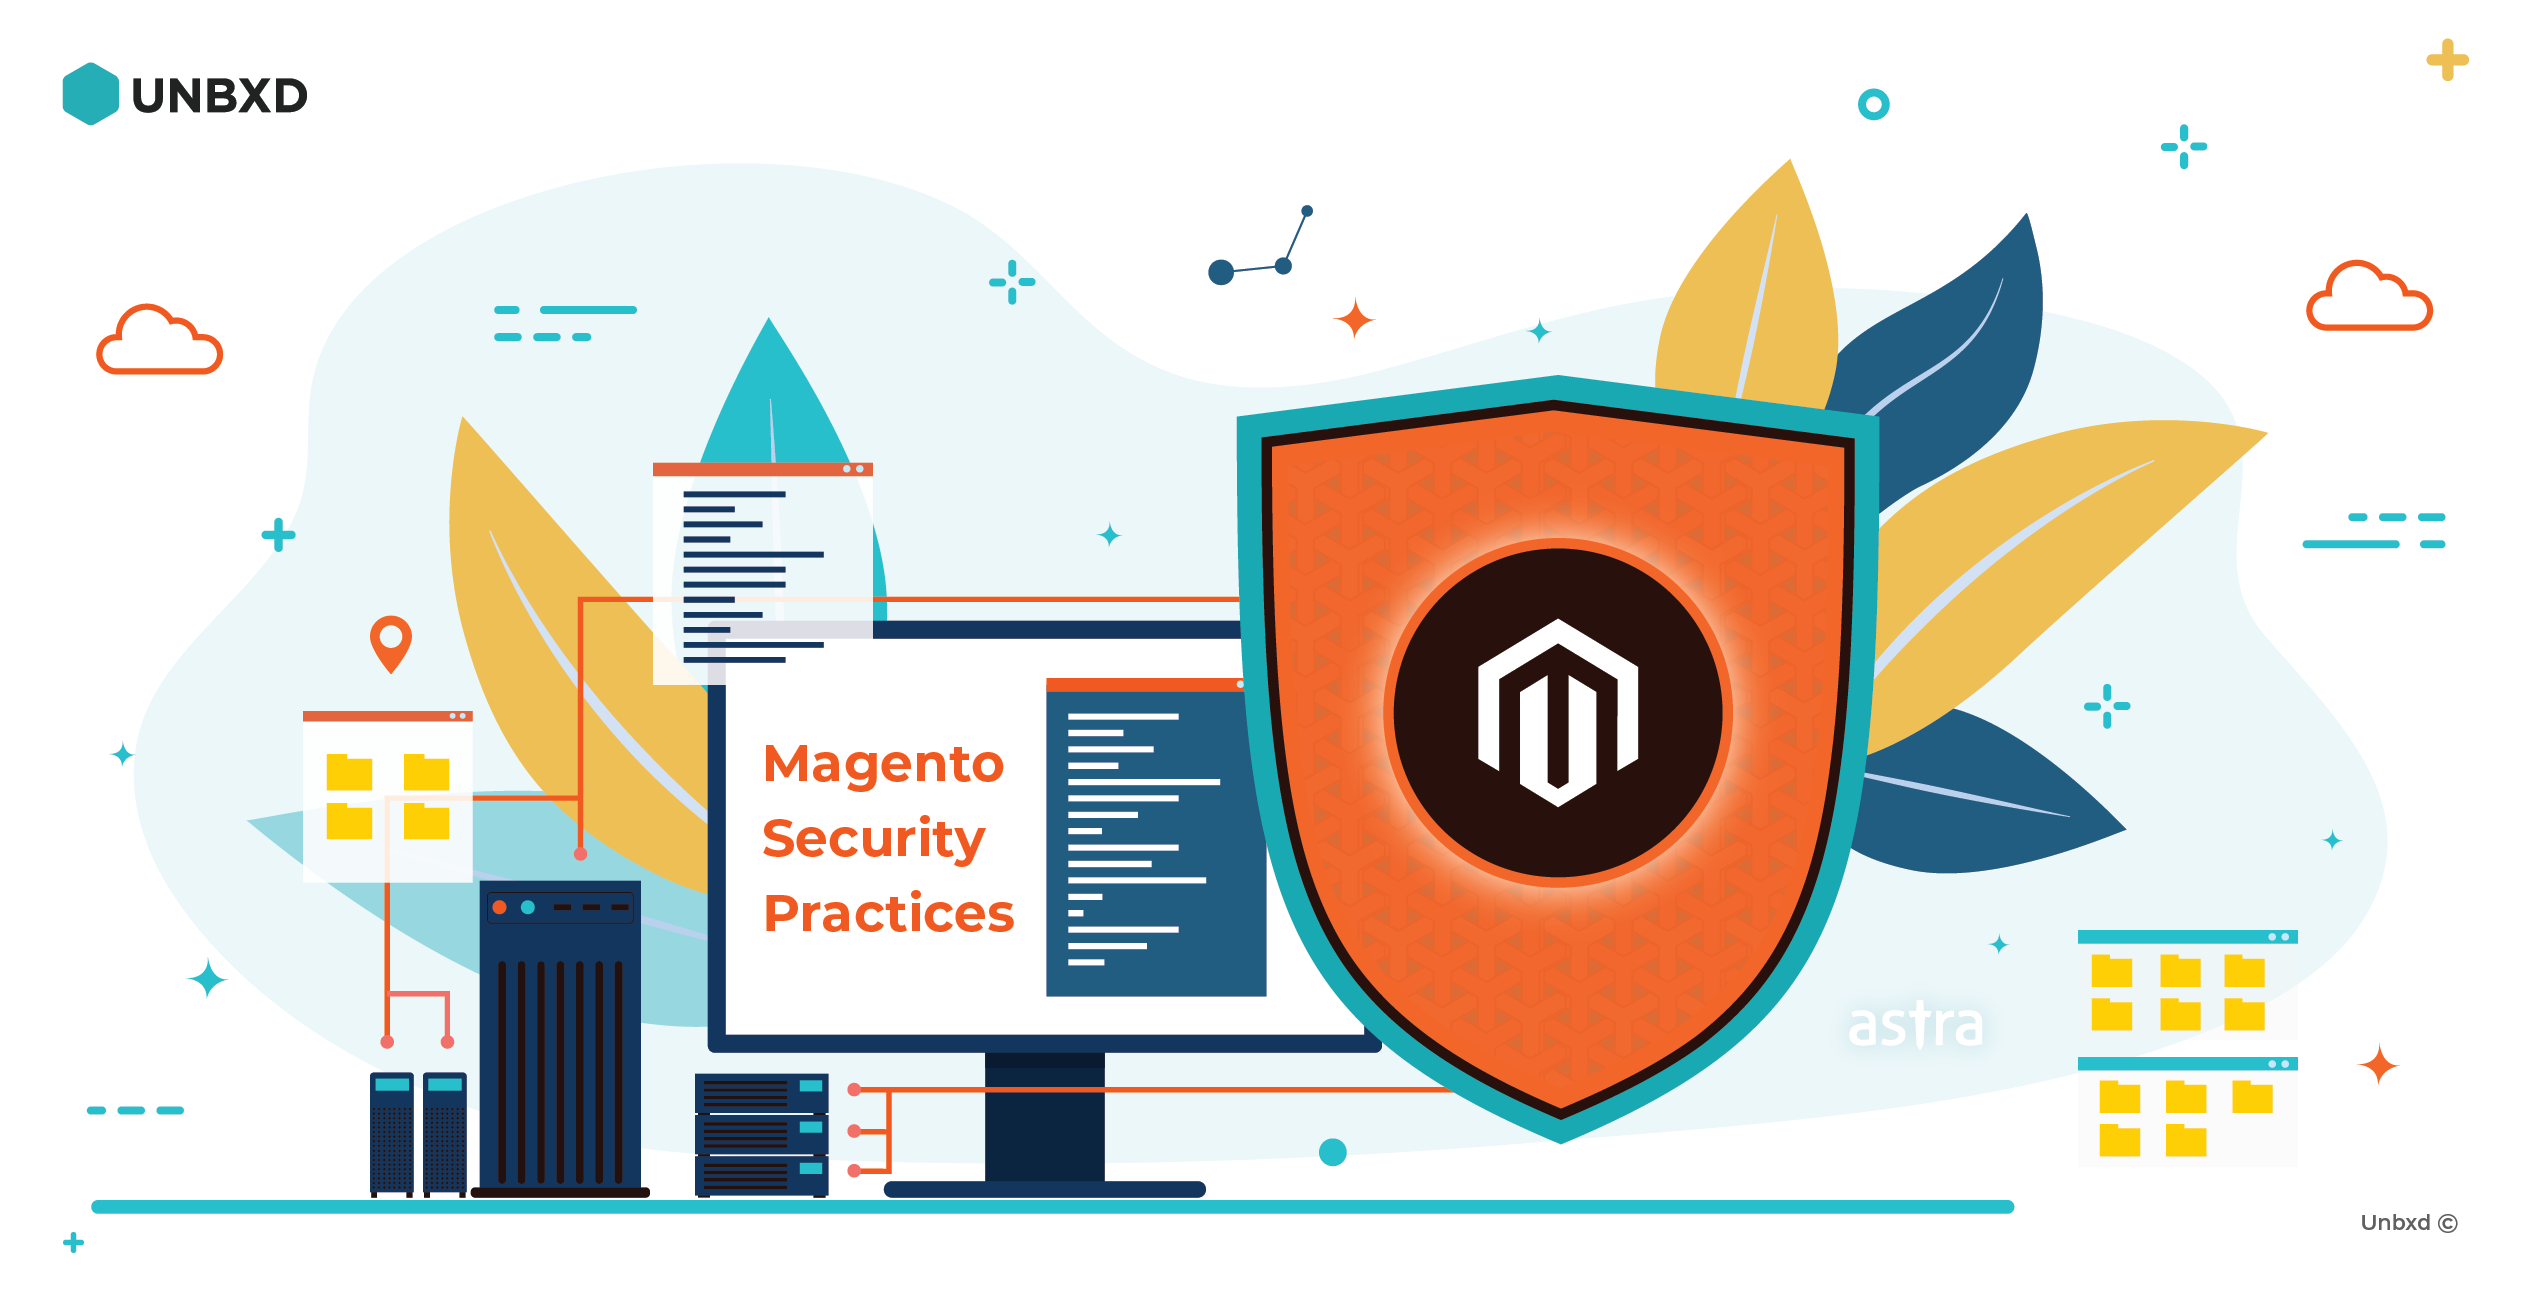 Magento Security Practices to adopt in 2020